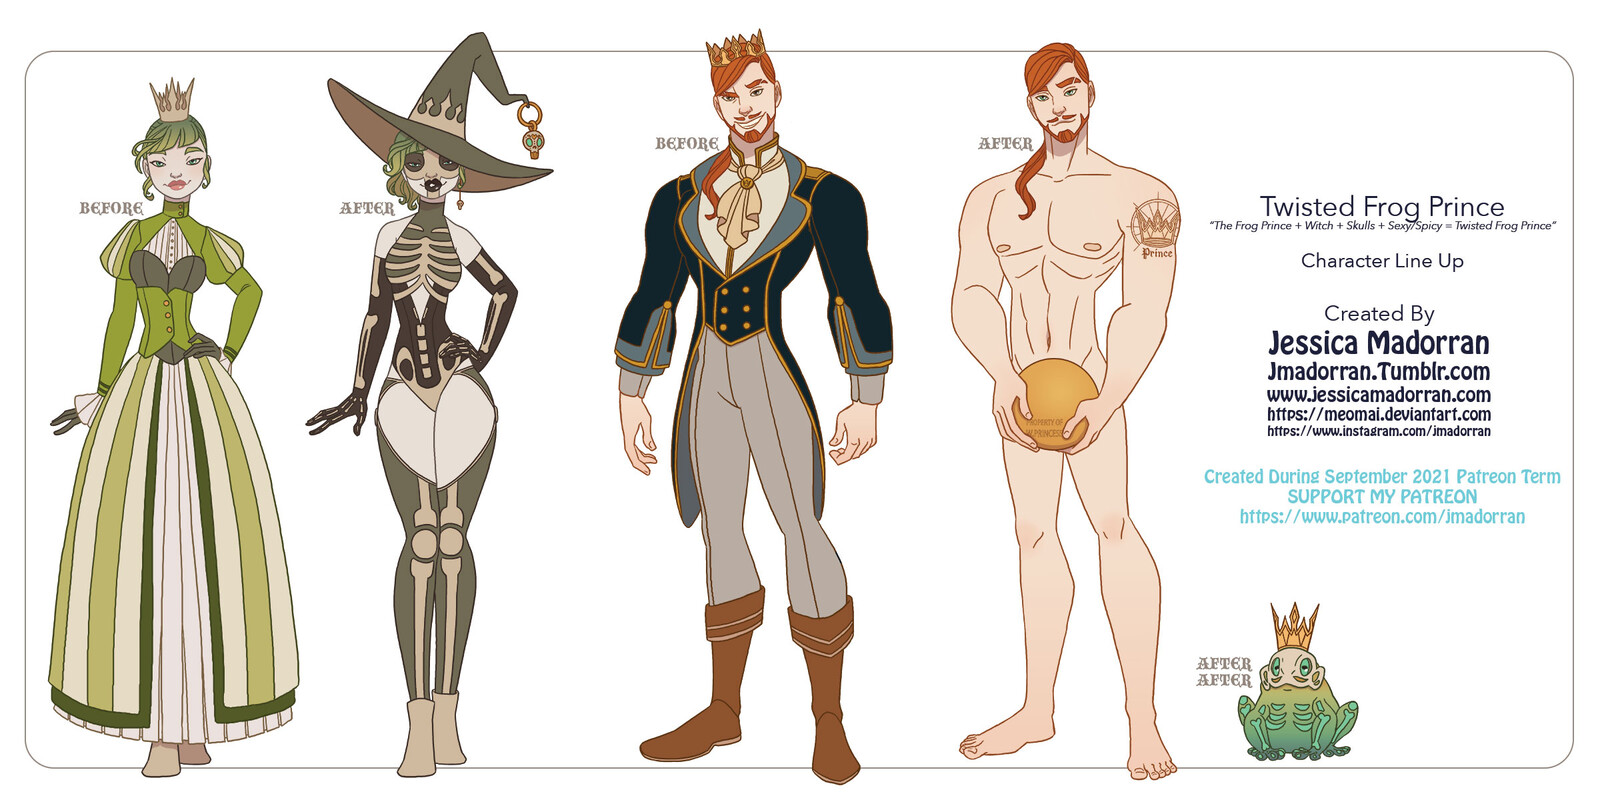 Patreon September 2021 - The Frog Prince Character Line Up